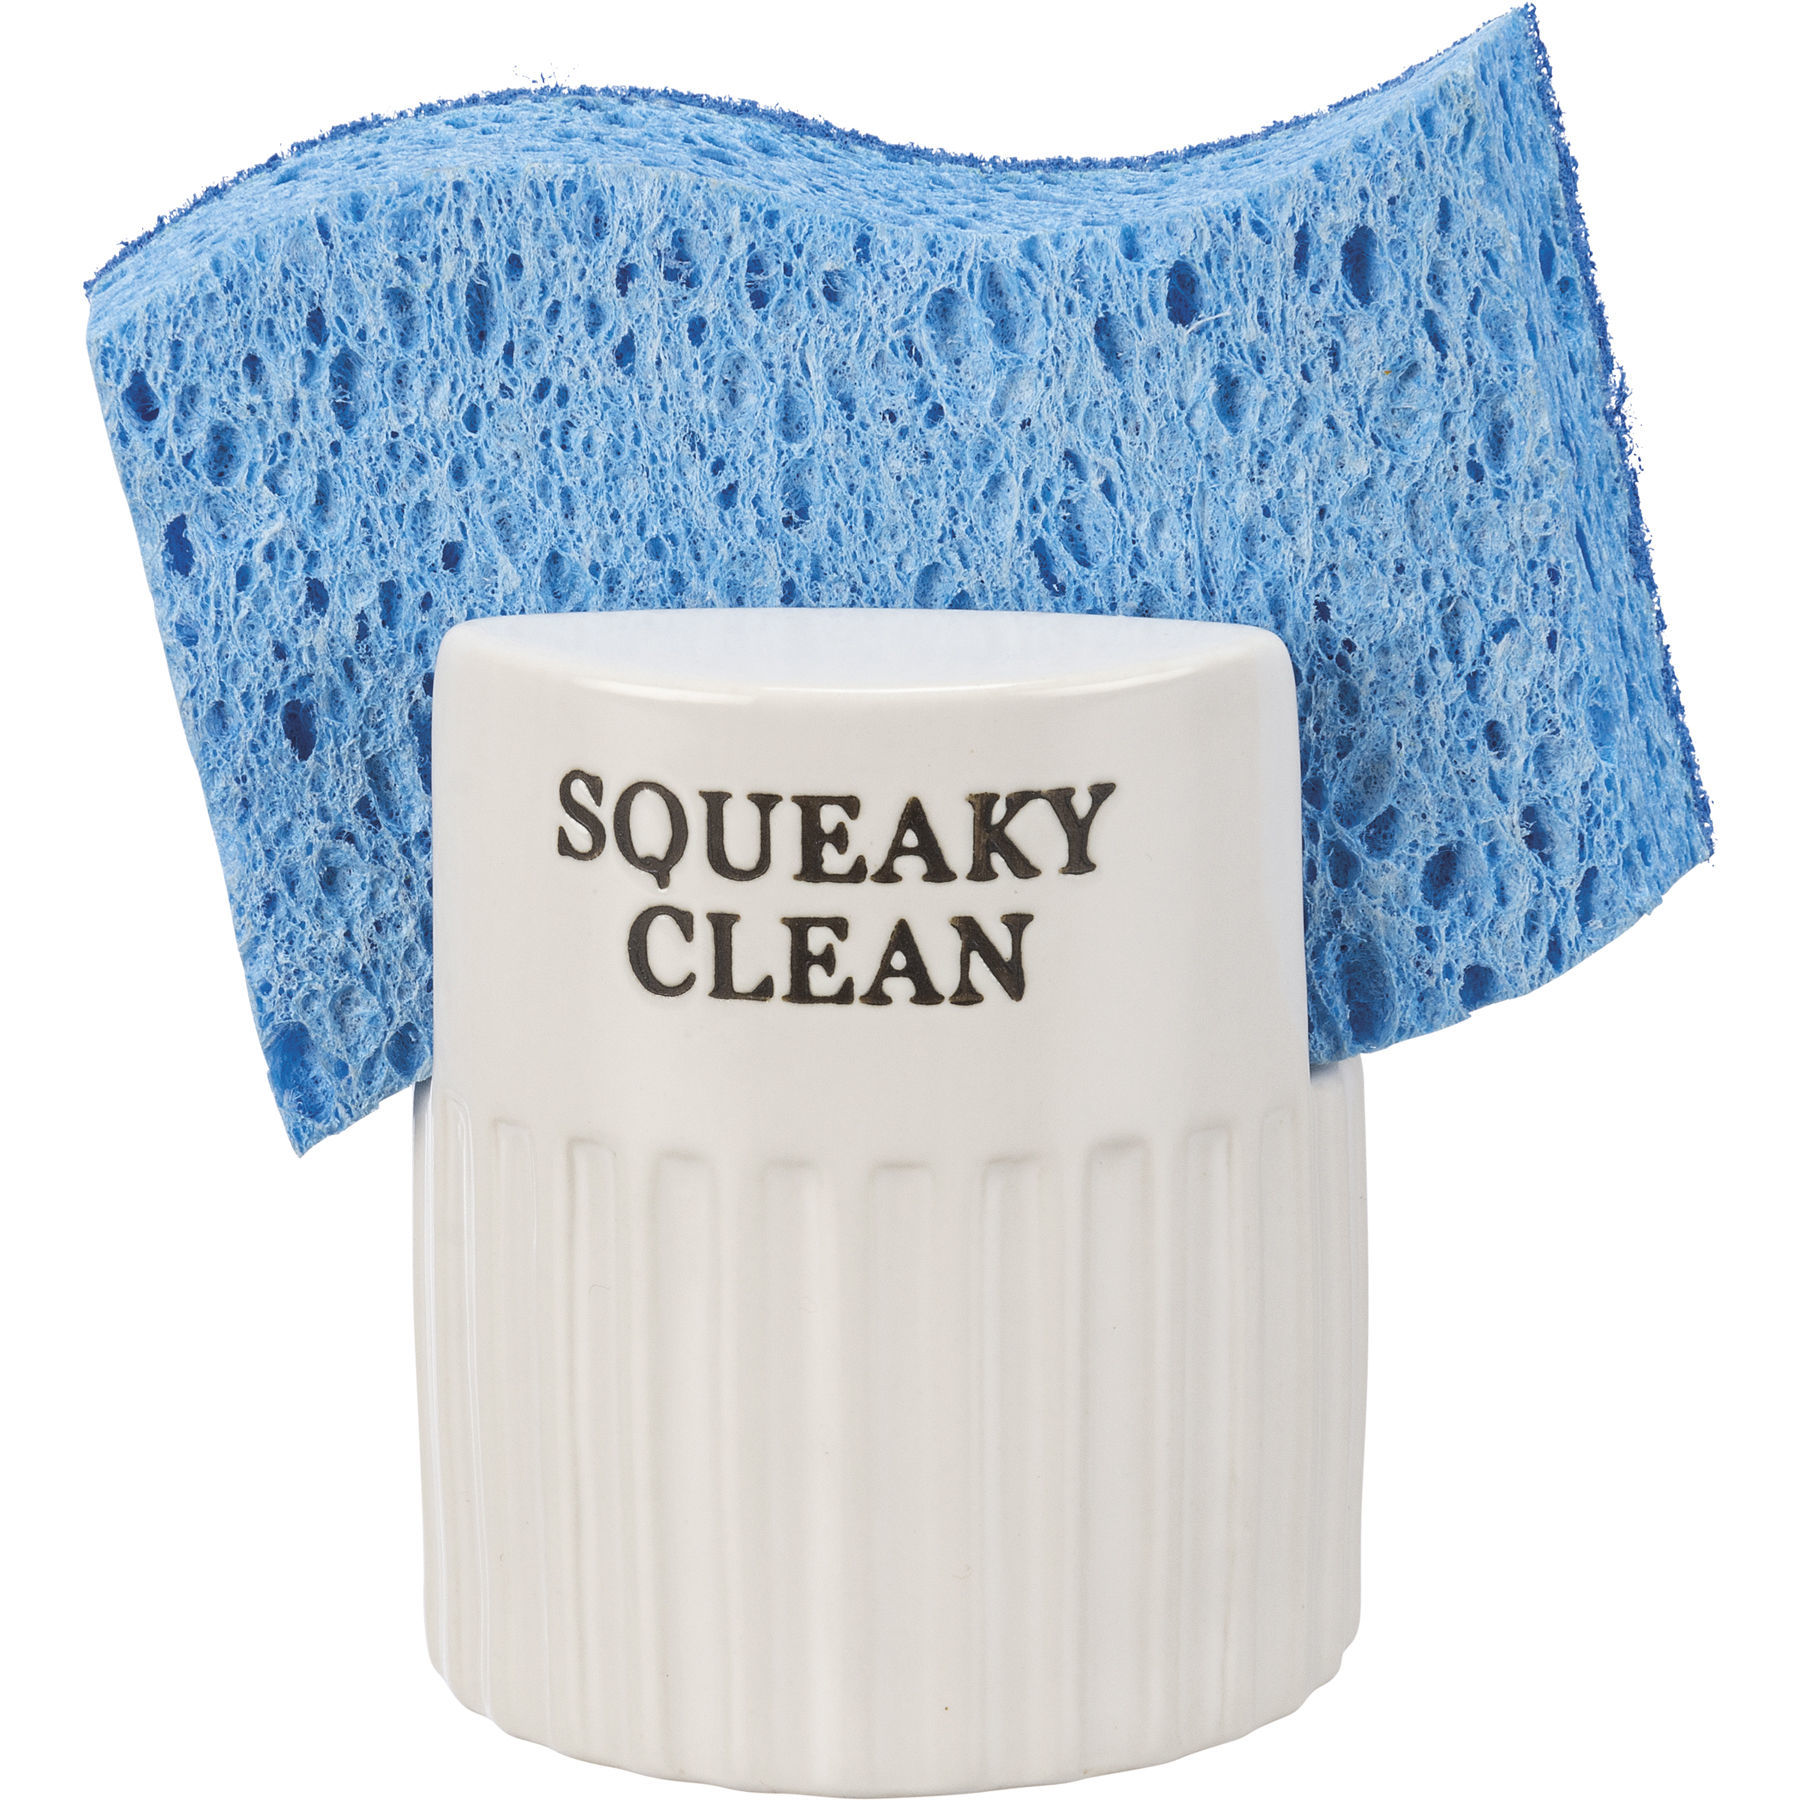 Sponge Holder - Squeaky Clean by Primitives by Kathy